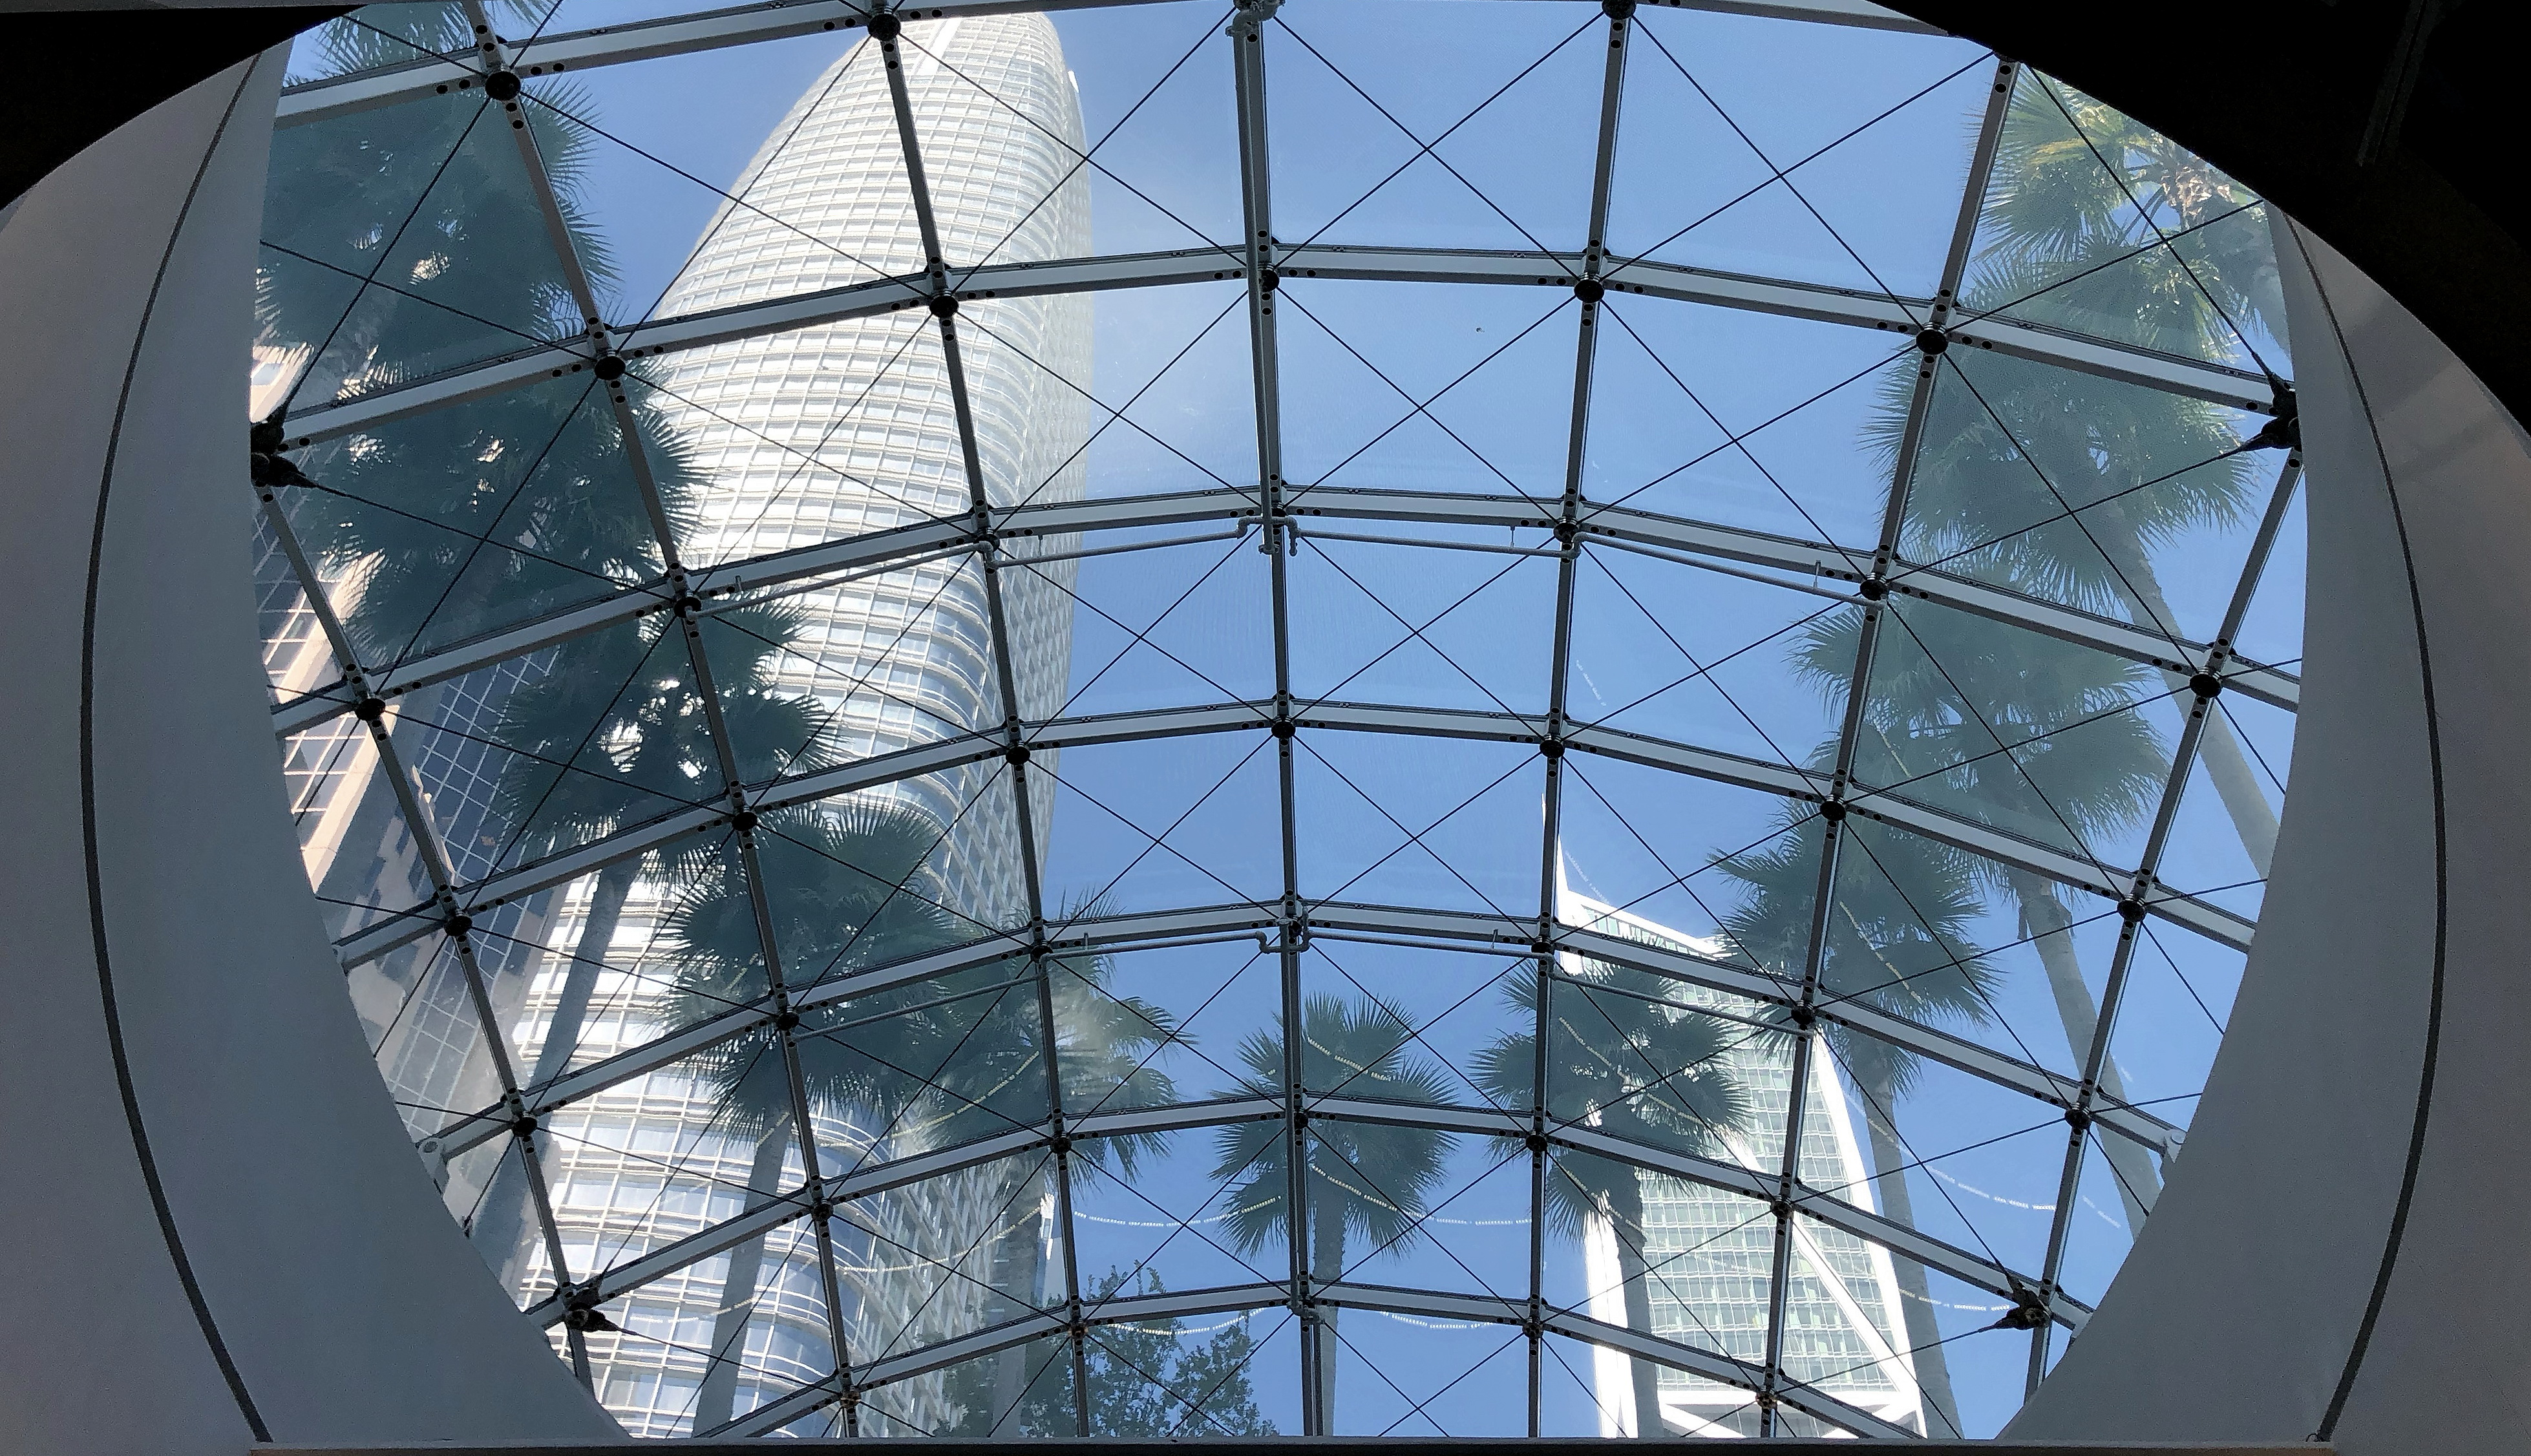 15_Skylight With Palms and Tower.jpg